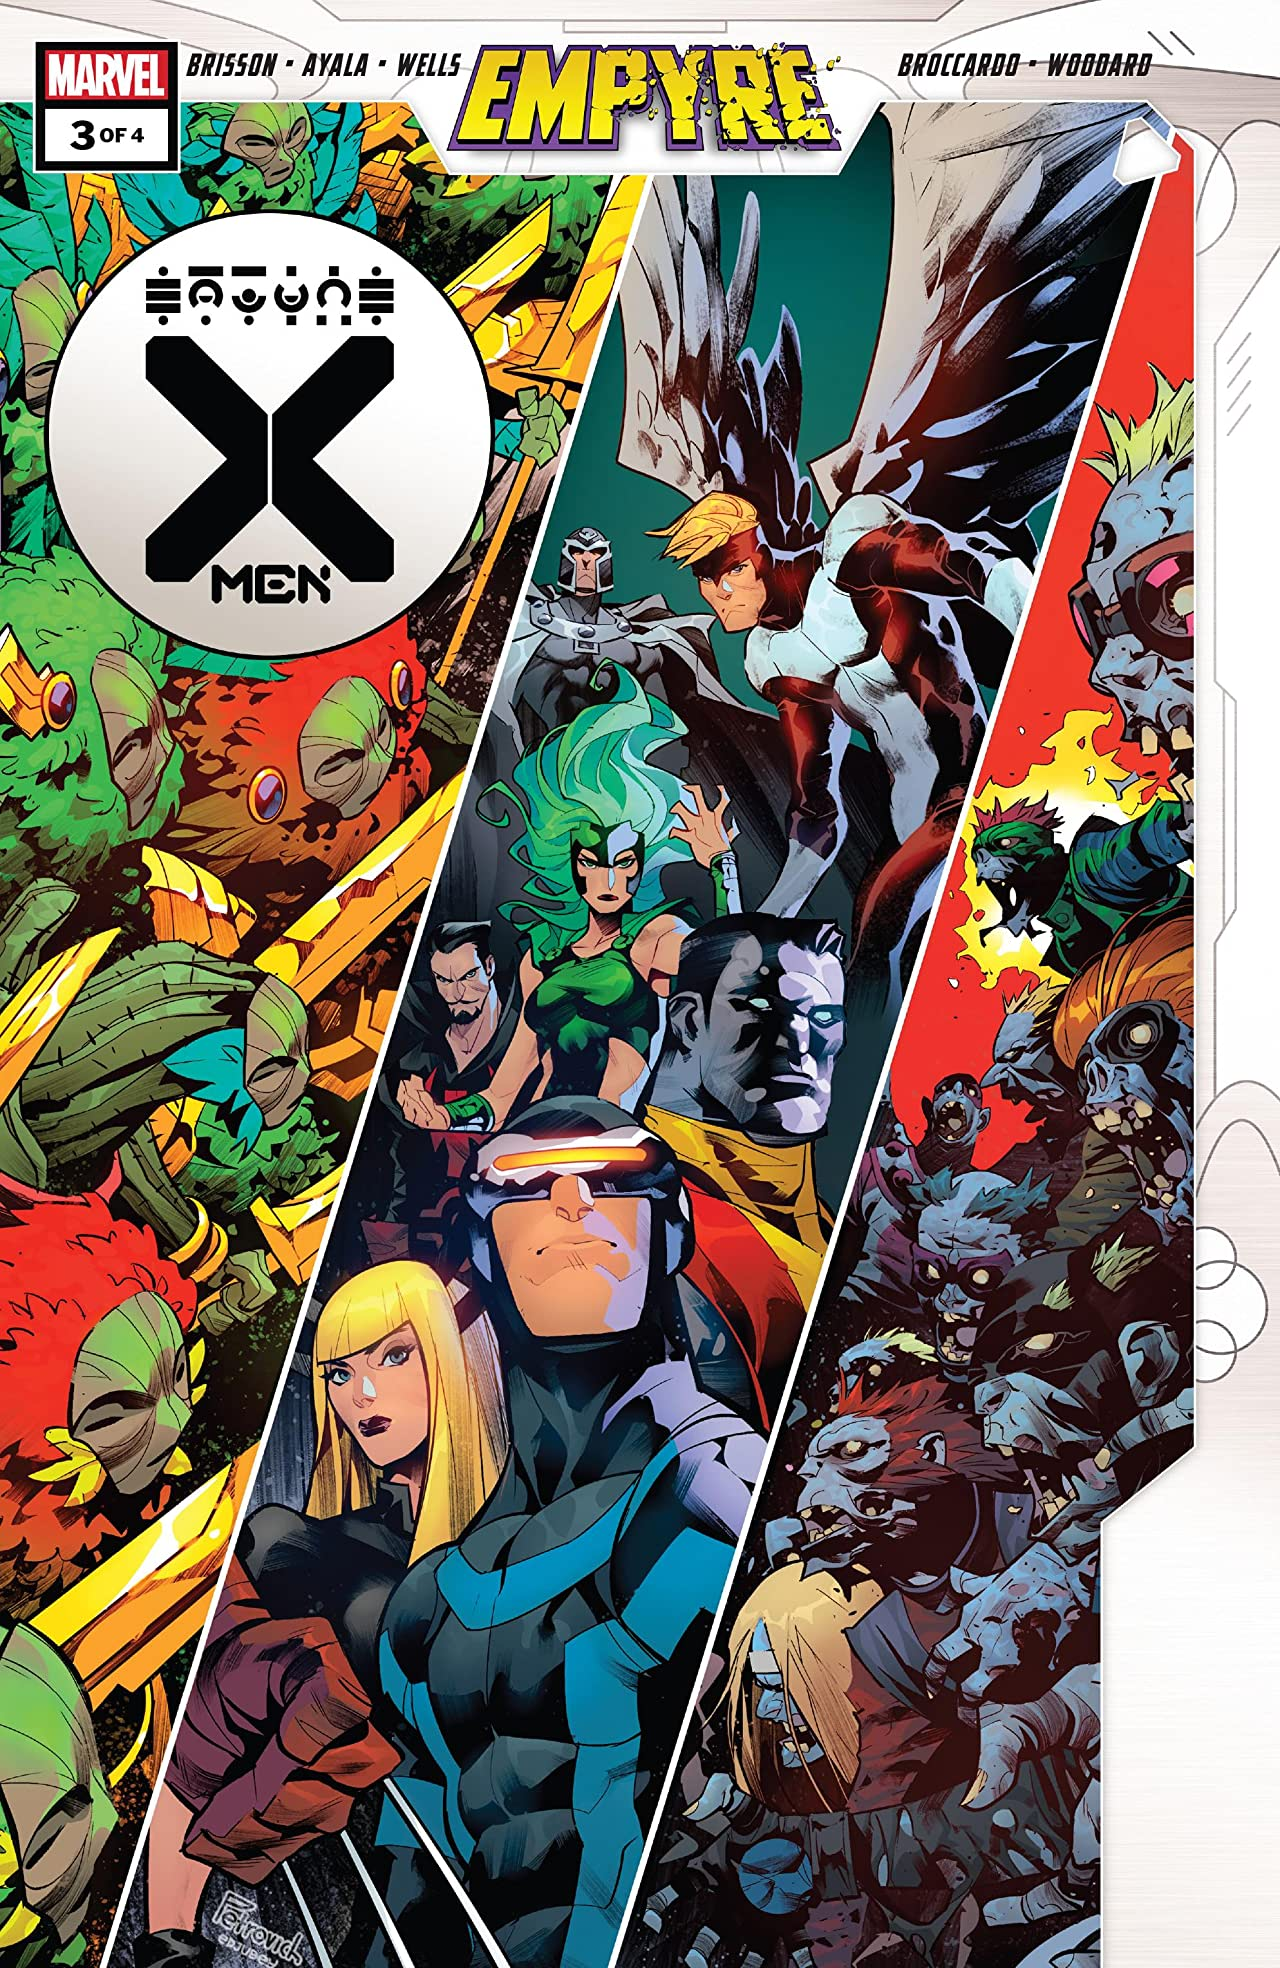 Empyre: X-Men Vol 1 3